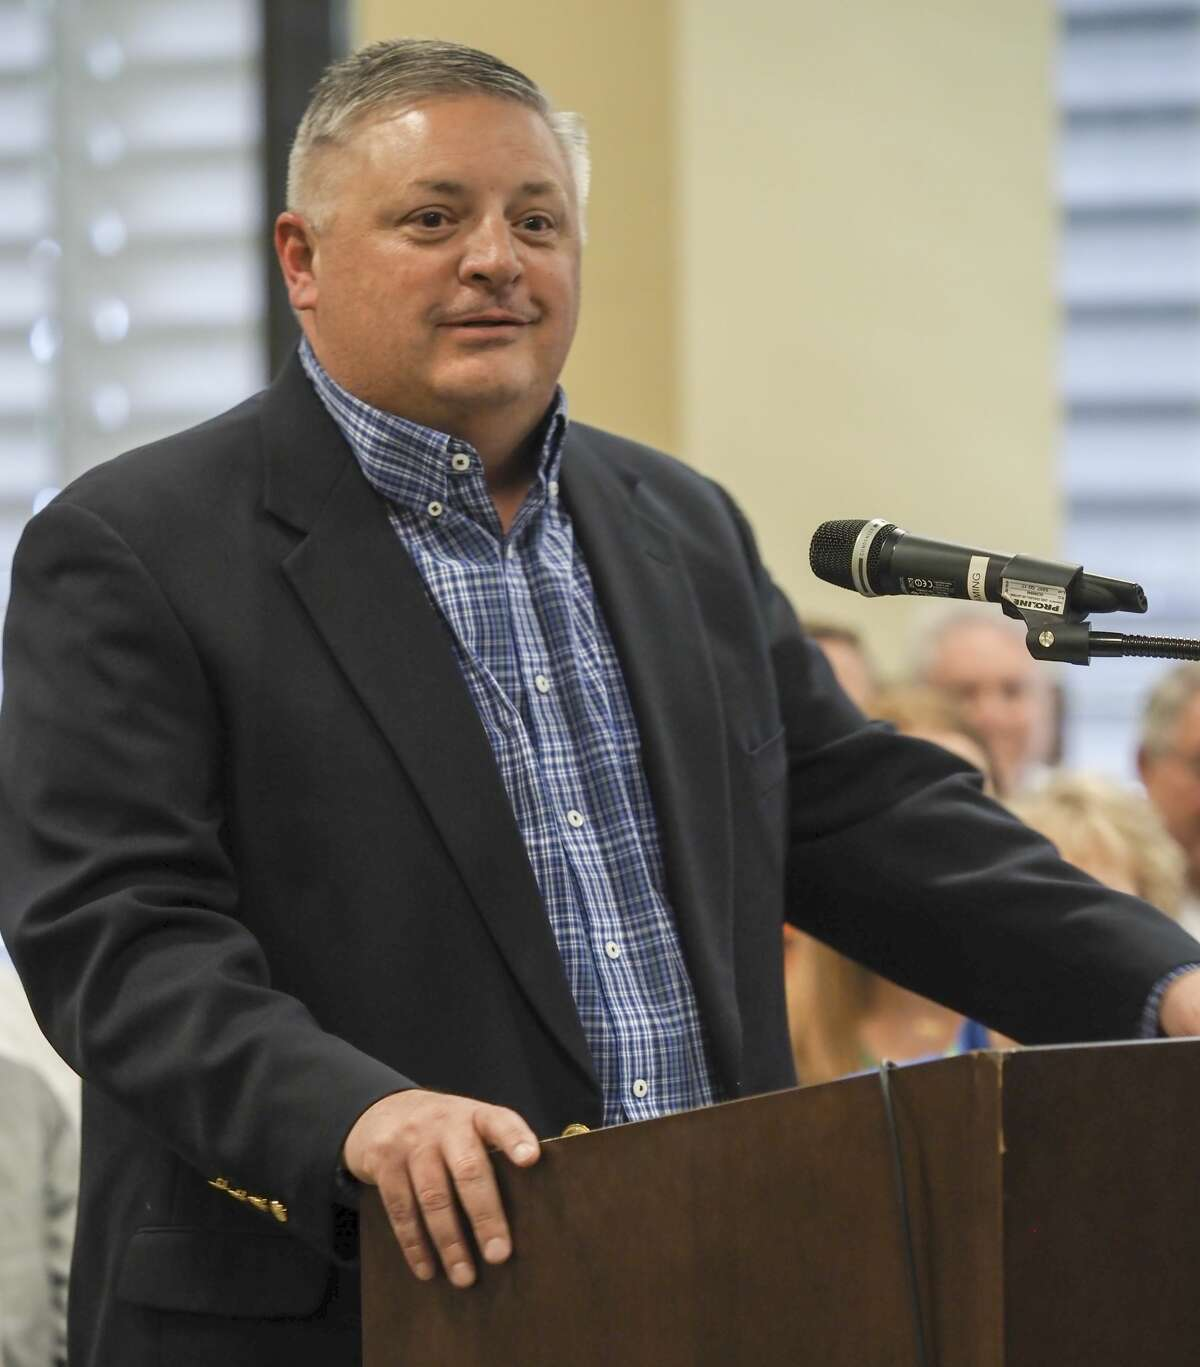 Greenwood Superintendent Ariel Elliott thanks members of the Commissioners' Court for money to cover enhanced security at Greenwood schools in 2018. Tim Fischer/Reporter-Telegram